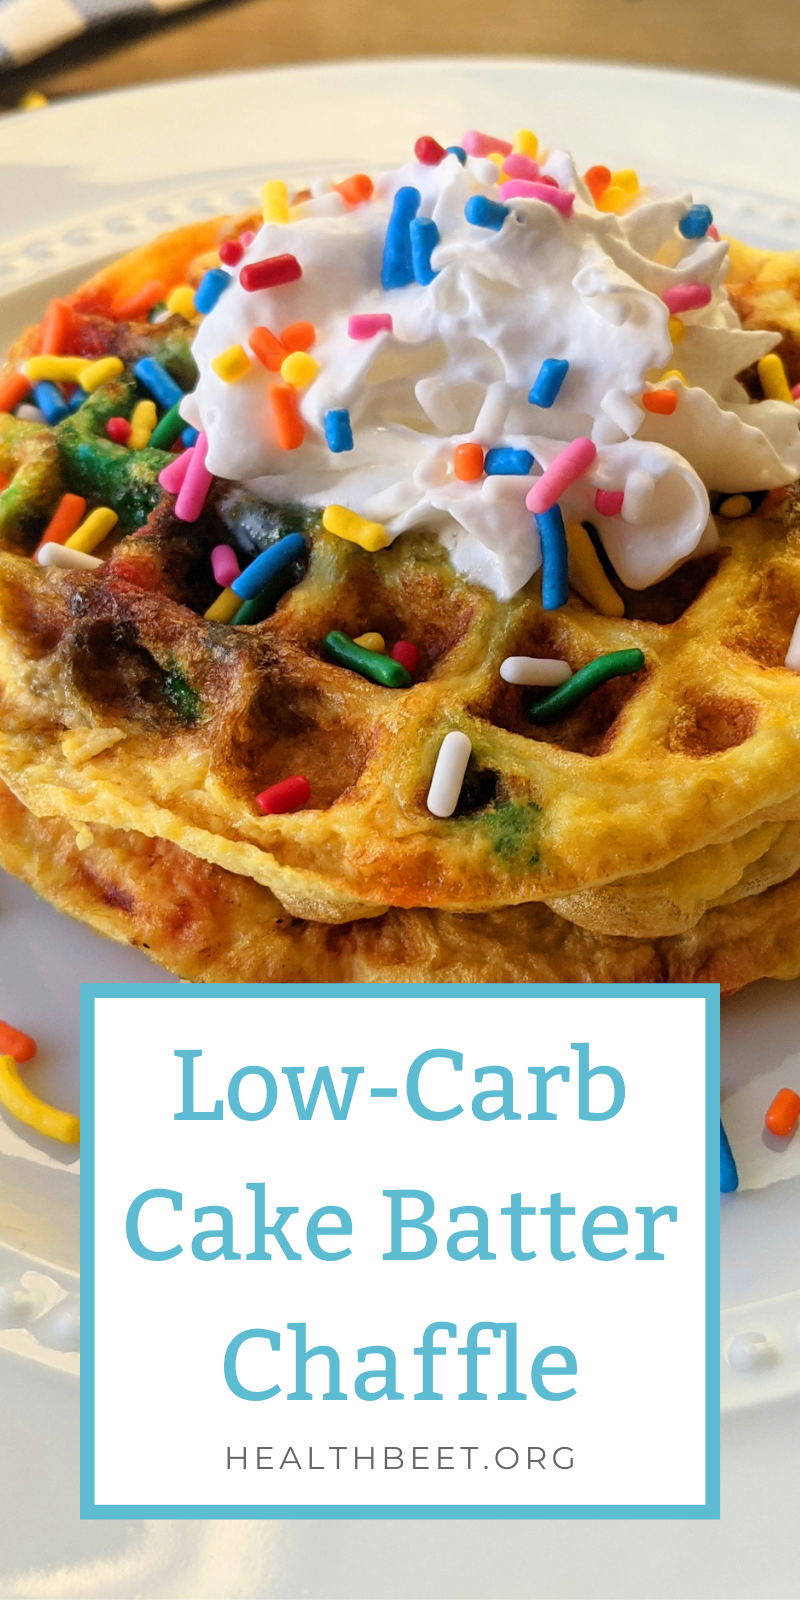 low carb cake batter chaffle